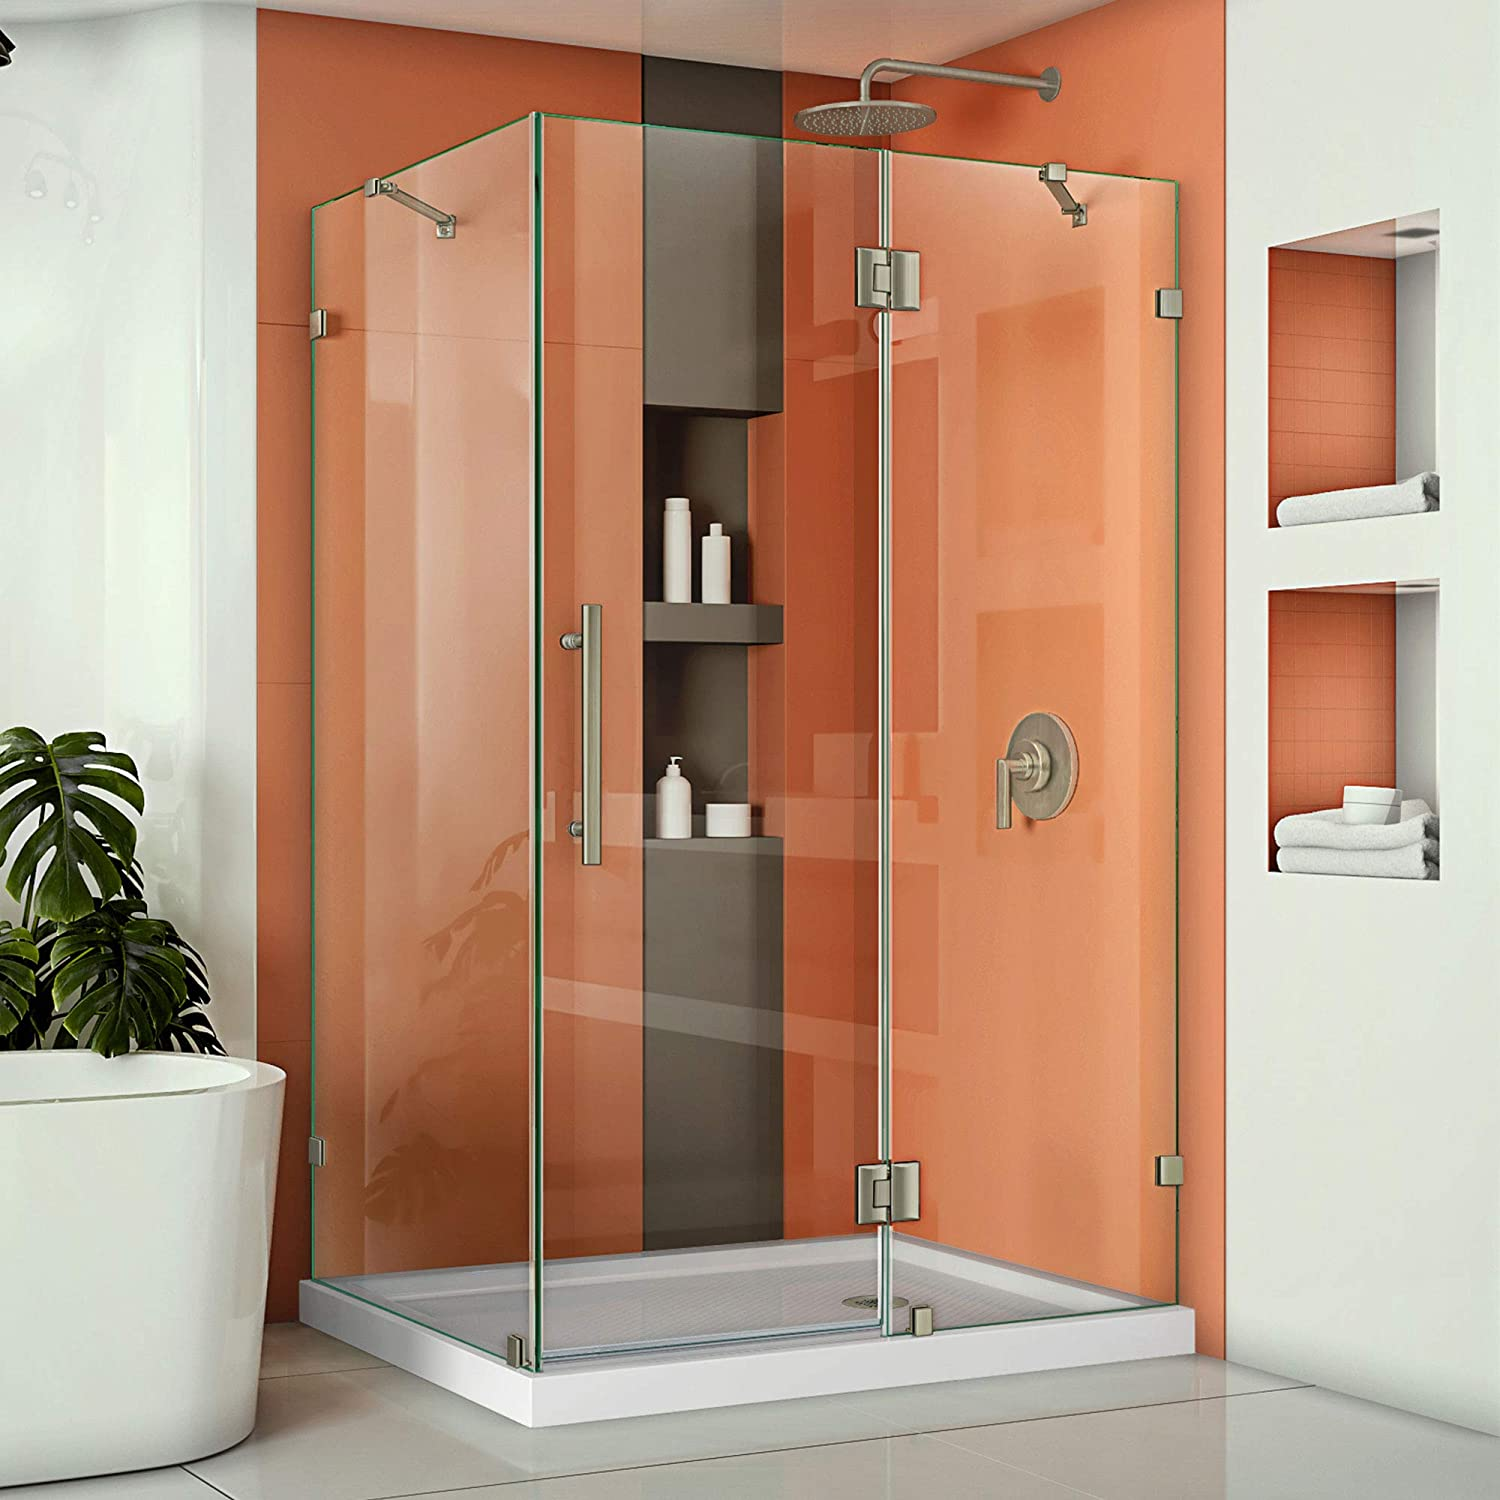 DreamLine Quatra Lux 34 1/4 in. D x 46 3/8 in. W x 72 in. H Frameless Hinged Shower Enclosure in Brushed Nickel, SHEN-1334460-04